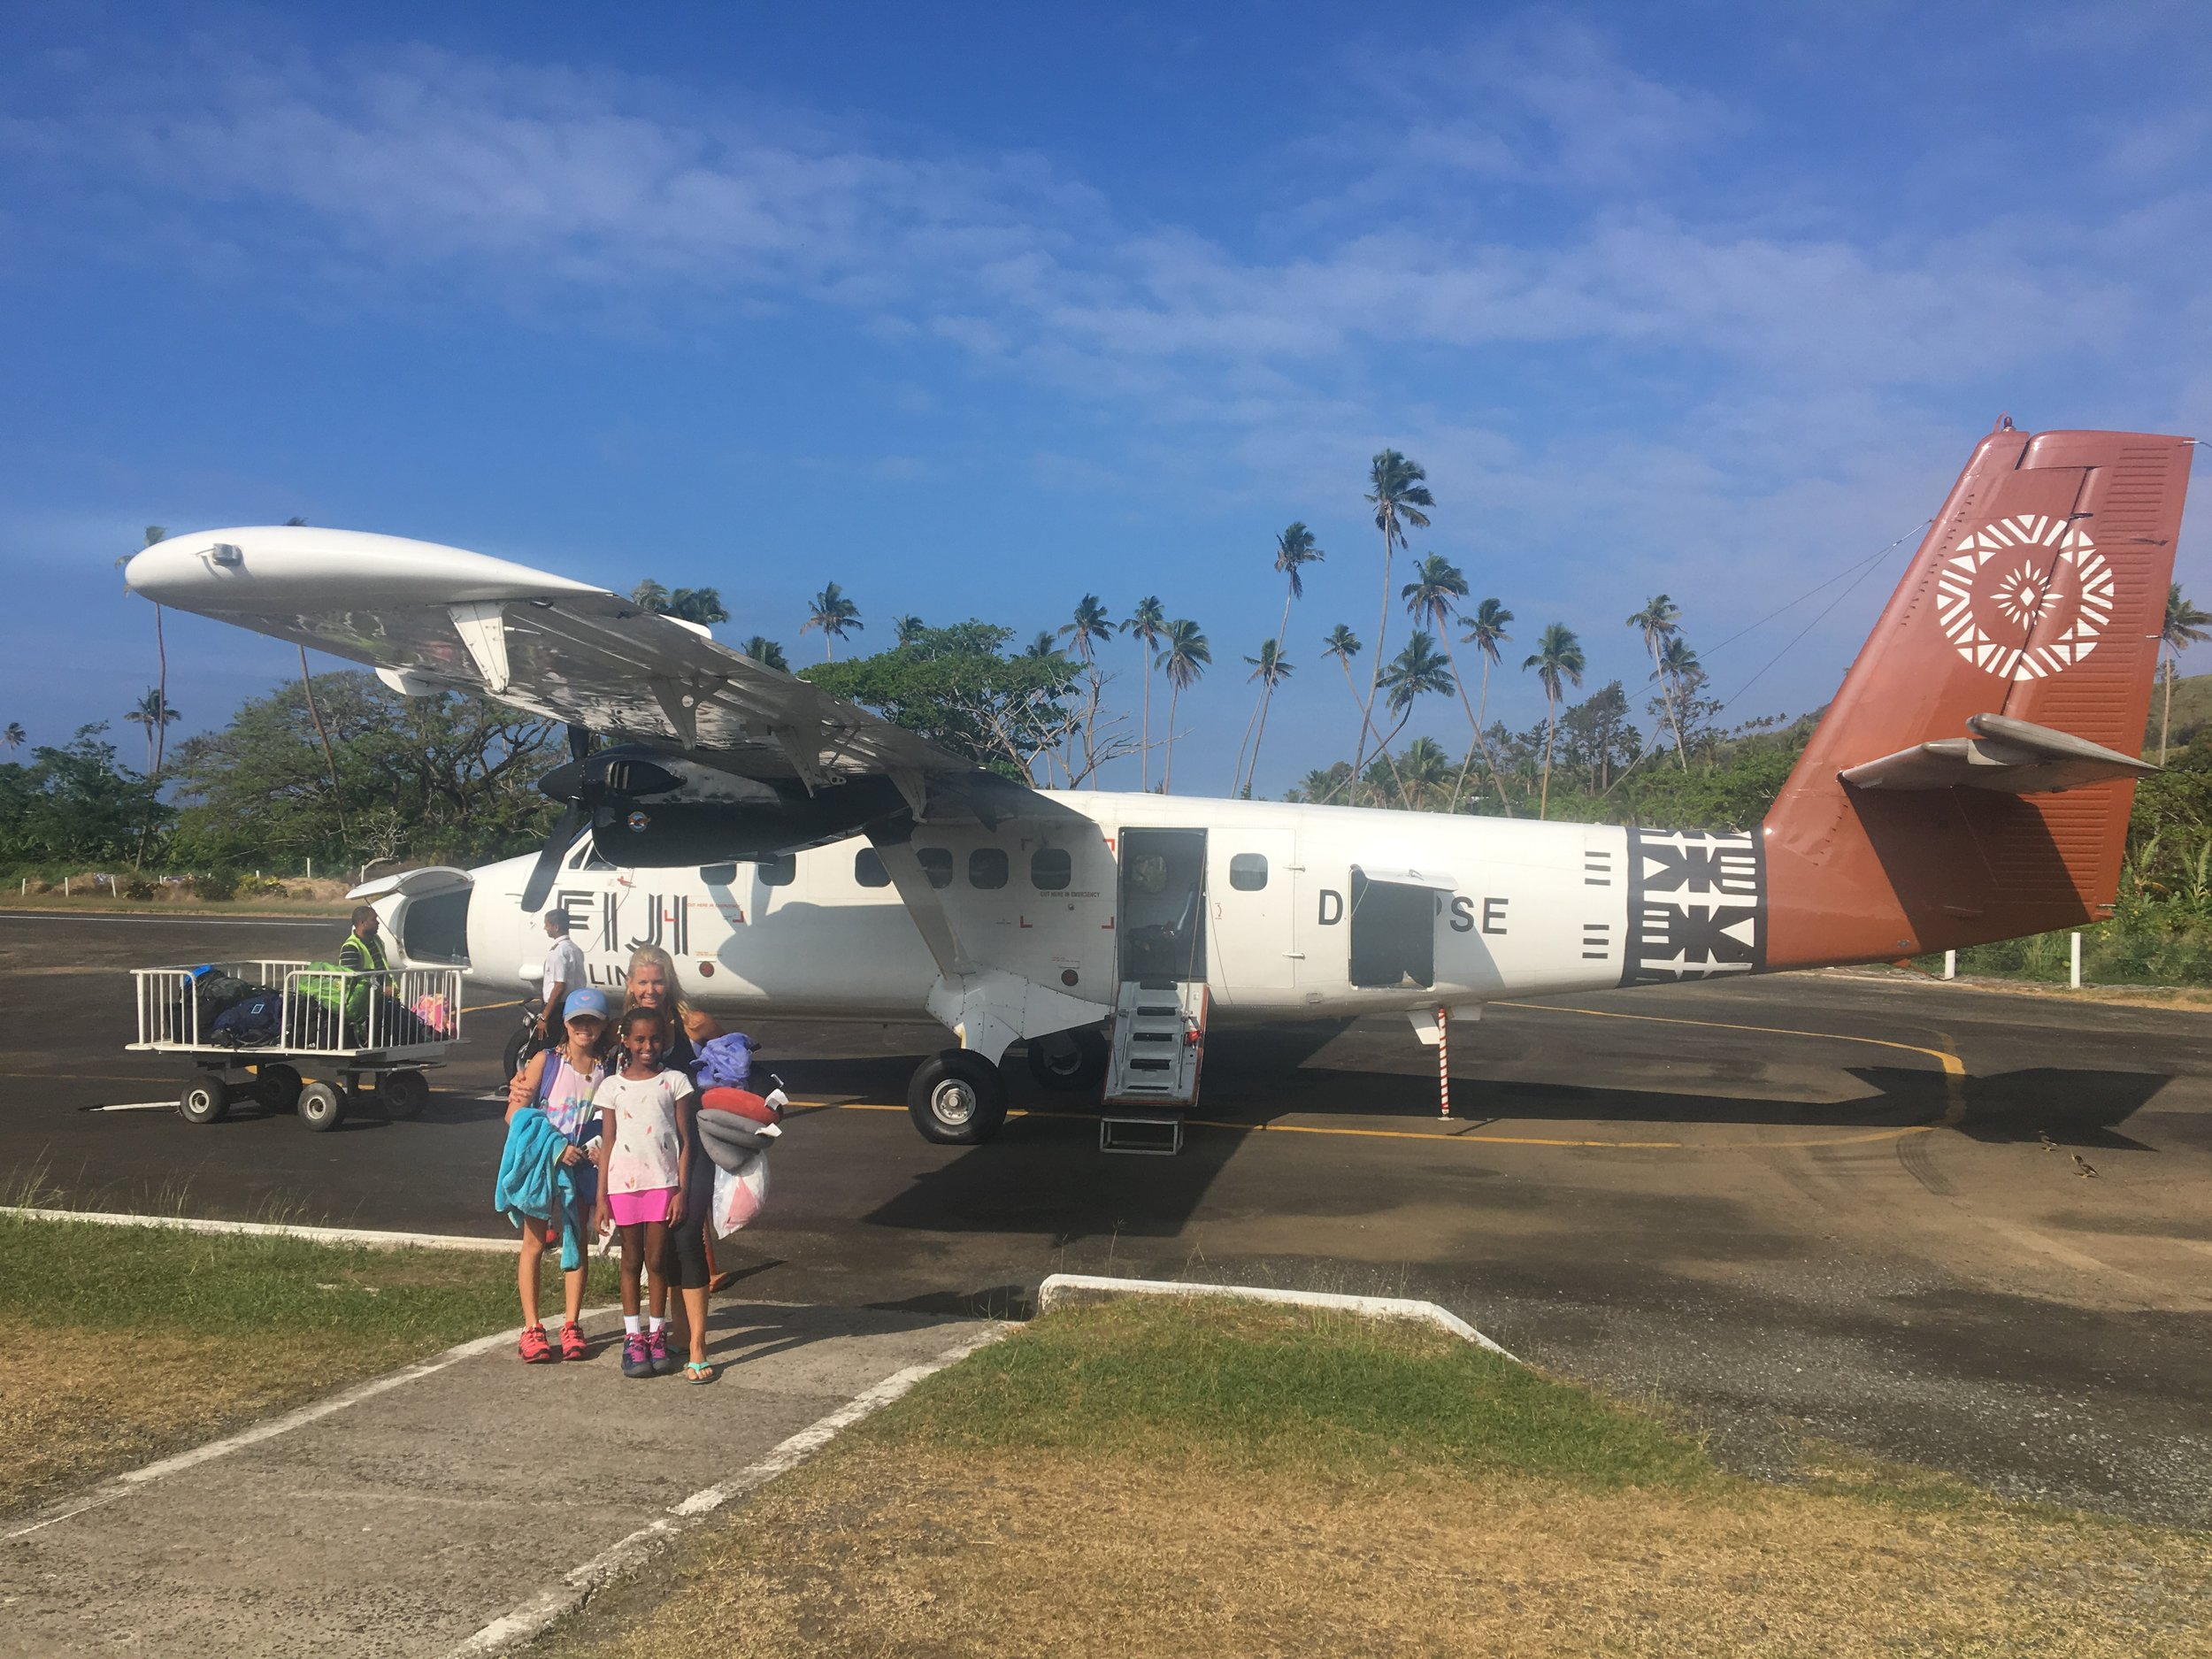 Our flight from Nadi to Savusavu, Fiji had us a little worried at first, but this 18 seat prop plane did the job perfectly. We had an amazing view landing and met some great friends on the flight with whom we are still in touch with today.